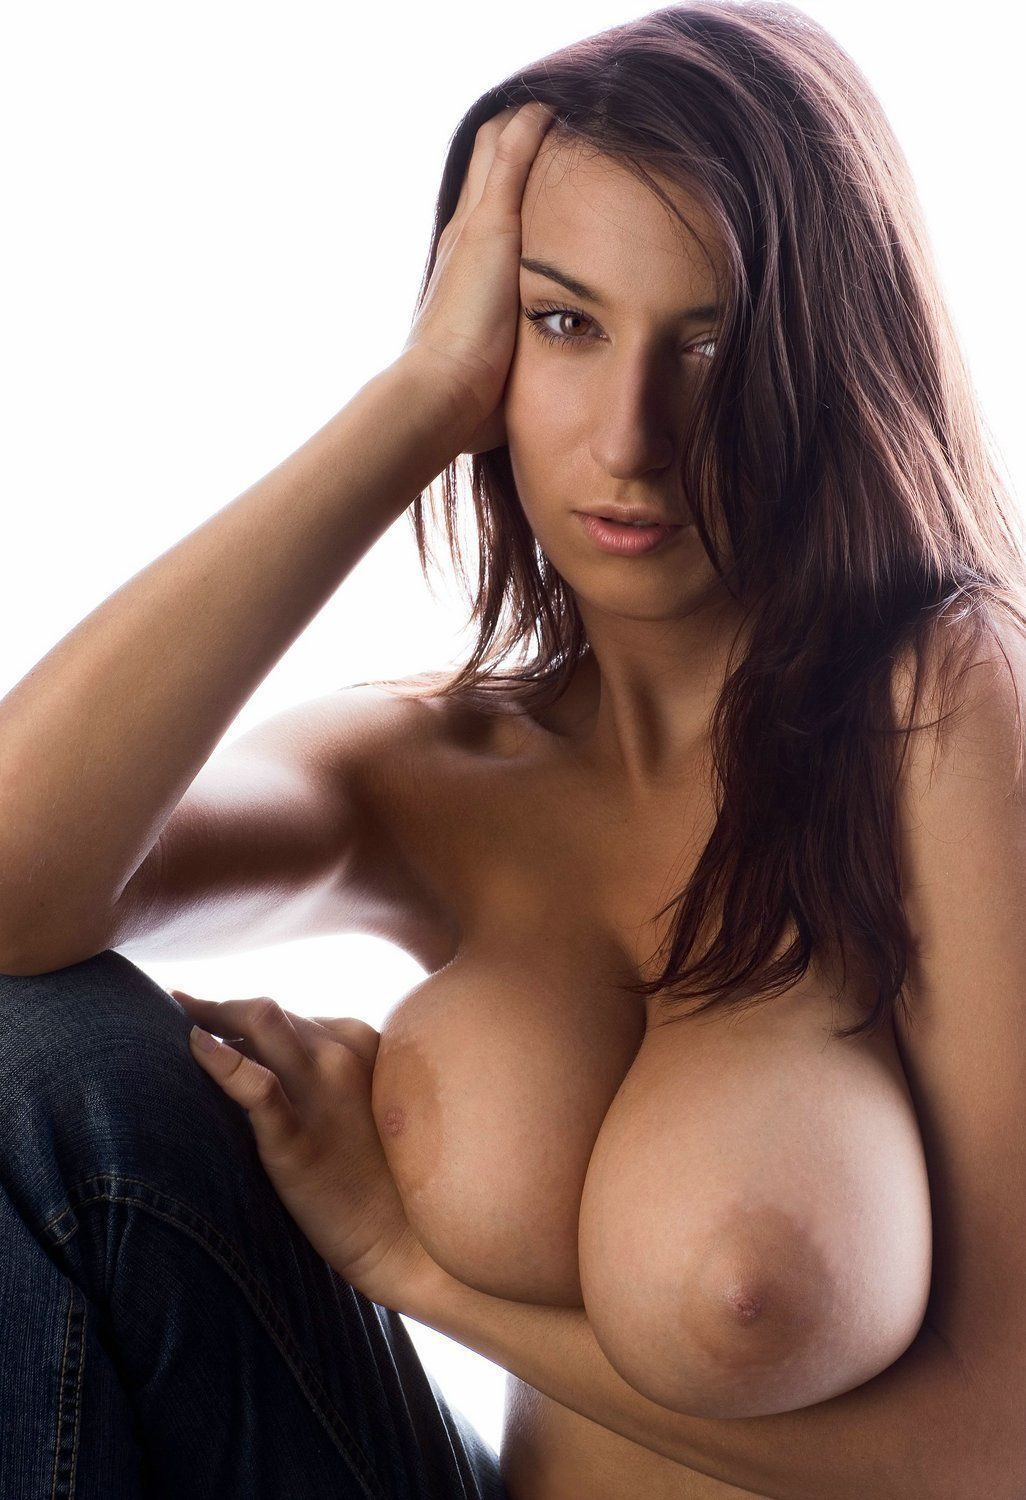 Amazing Boobs Pic amazing boob movies . top porn photos. comments: 2